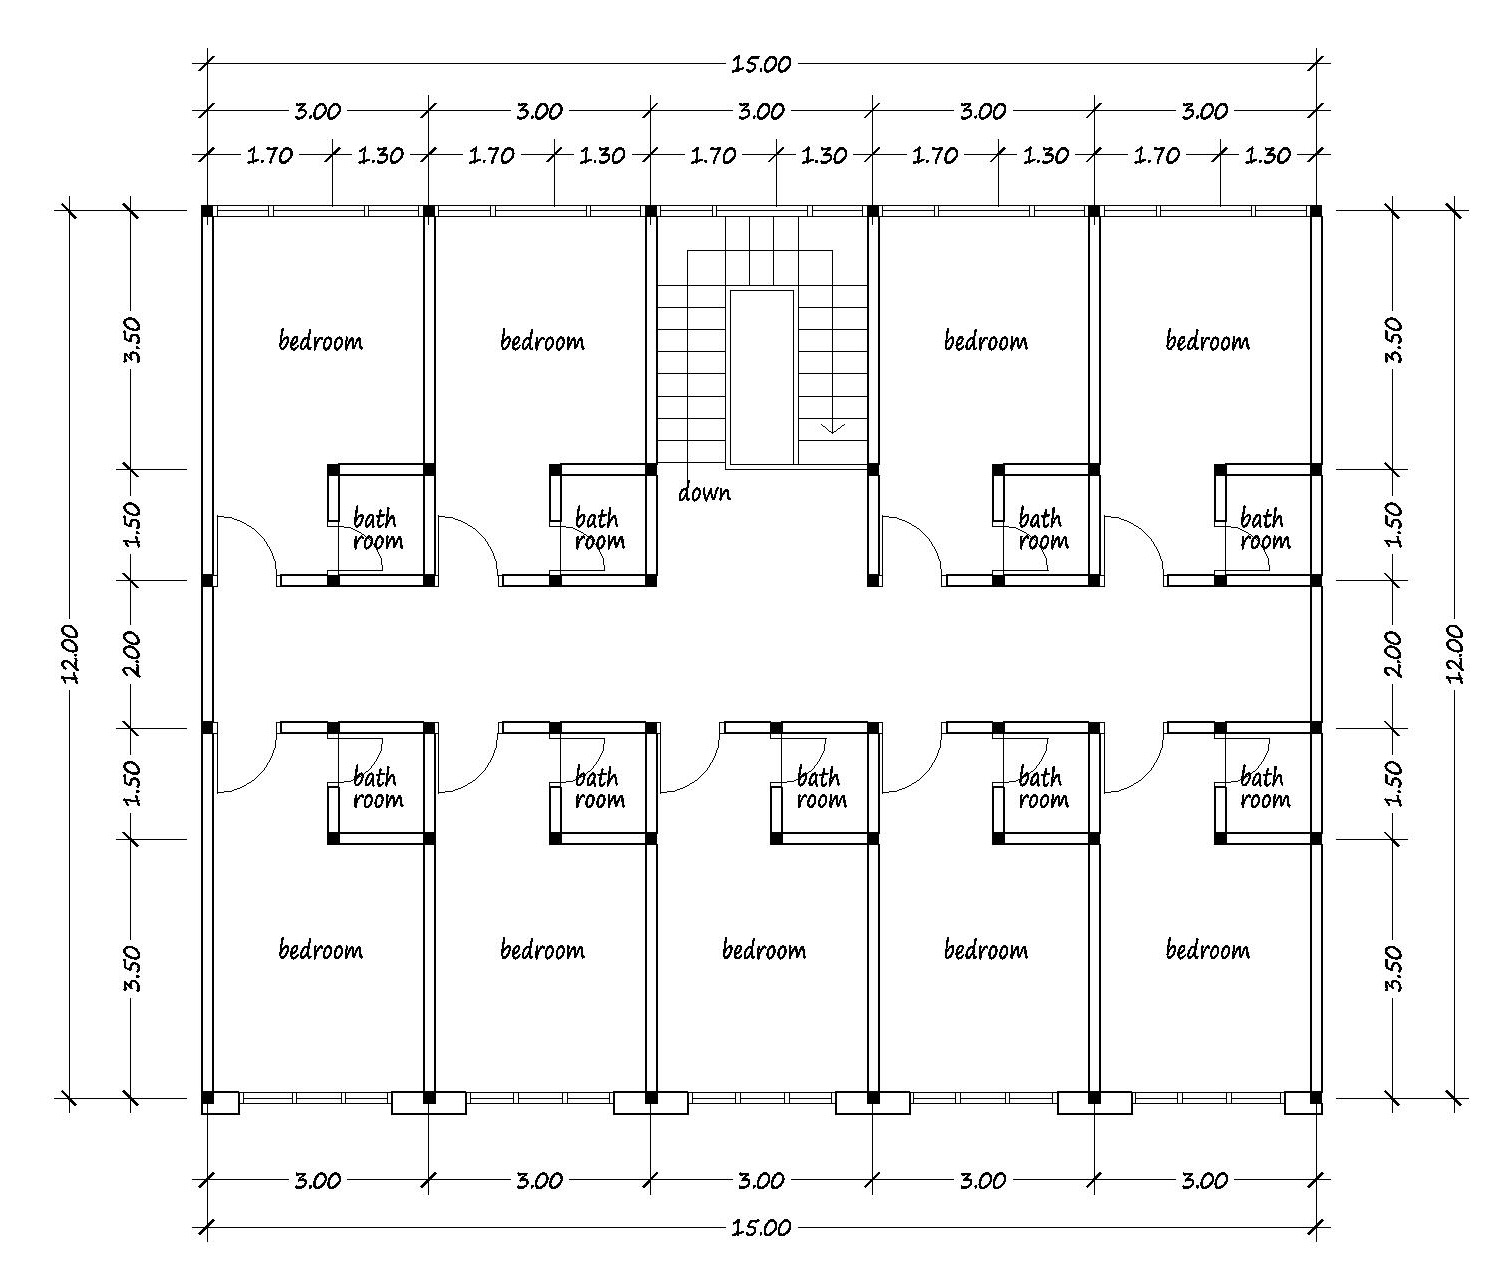 House plans for you plans image design and about house for Home design layout plan